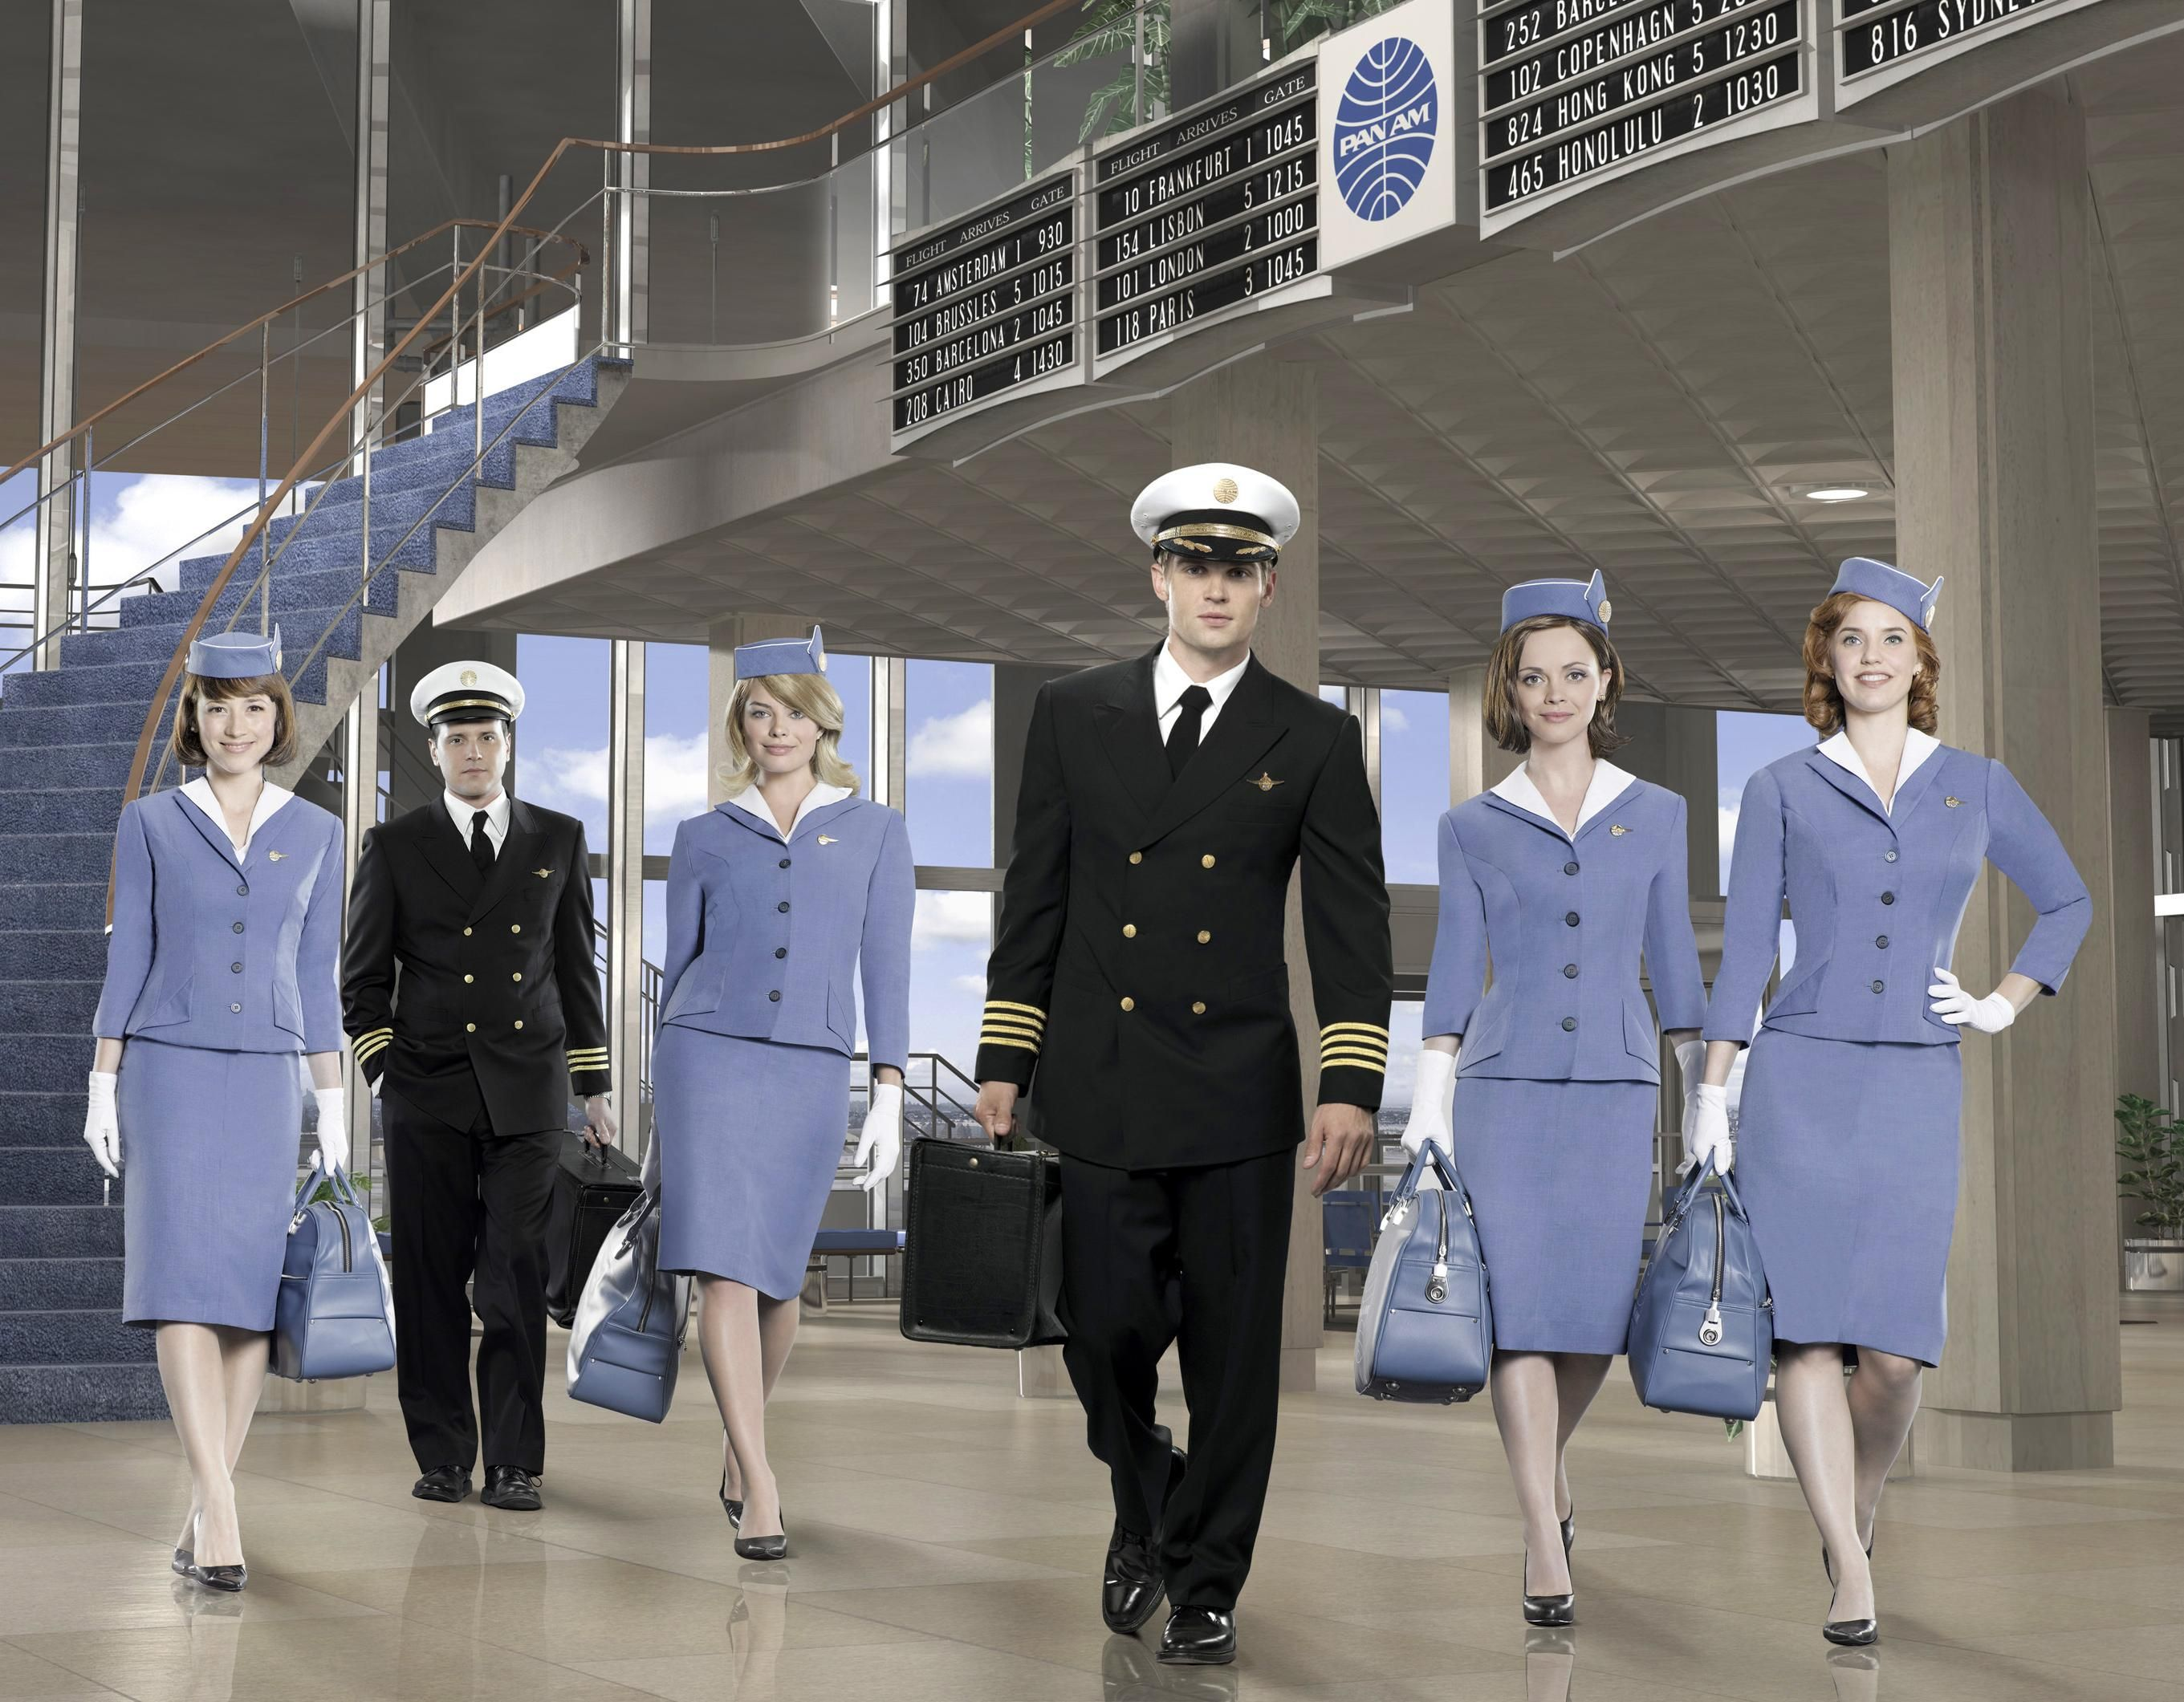 Pan Am ABC 2011 2012 Starring Christina Ricci Margot Robbie Michael Mosley Karine Vanasse Mike Vogel Kelli Garner